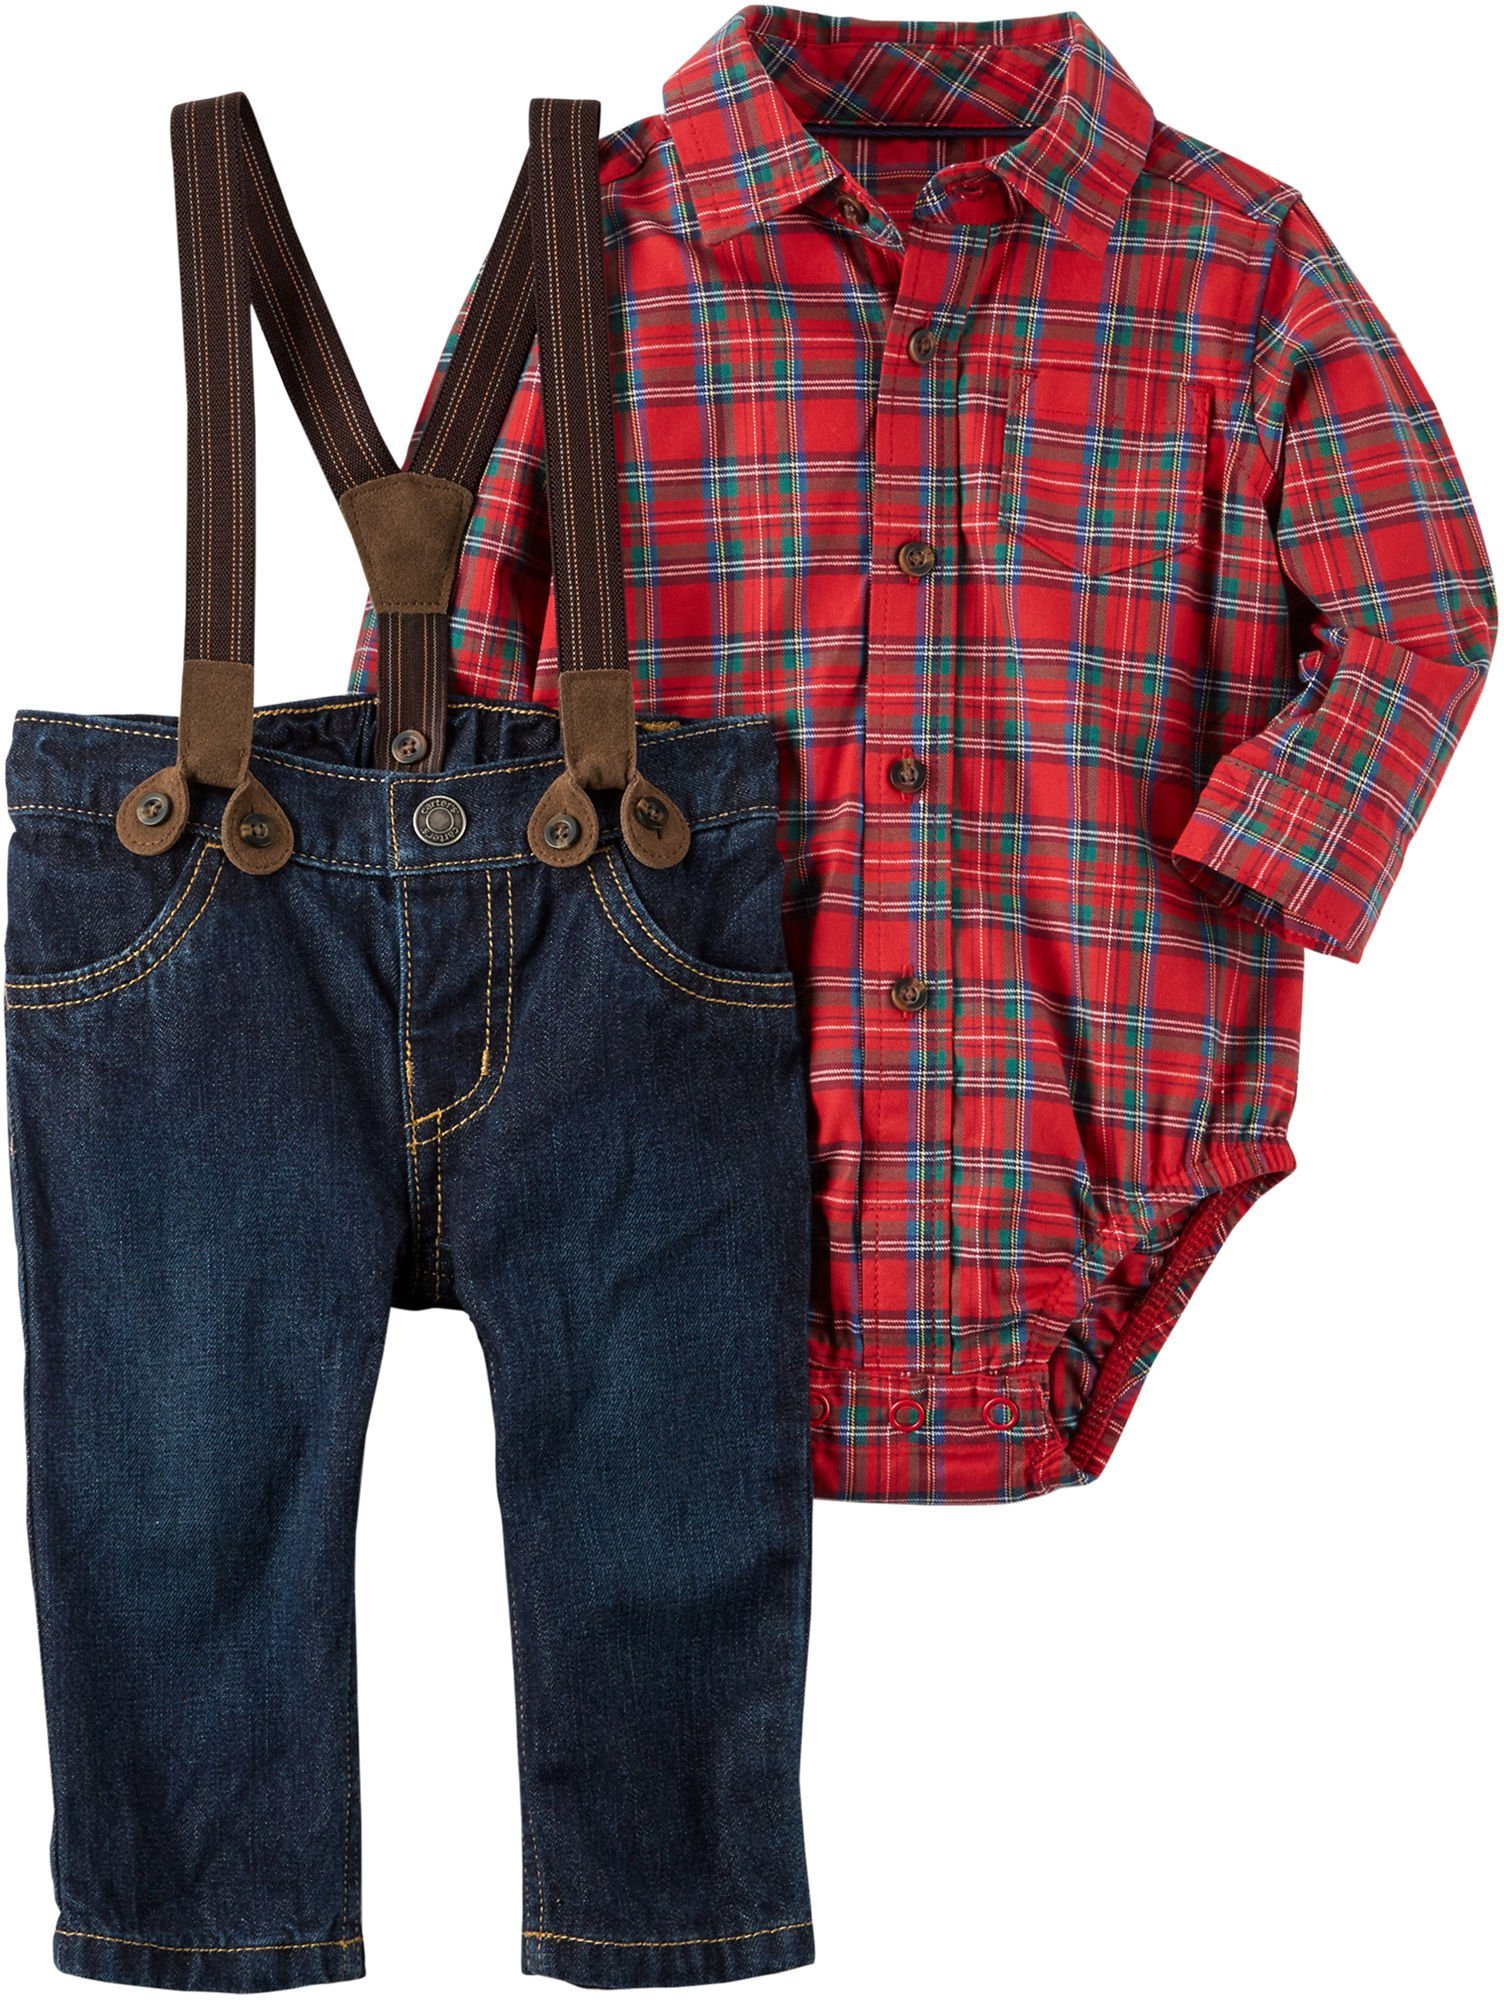 Carters Baby Boy Bodysuit Pant three piece set outfit red plaid 12 months NWT